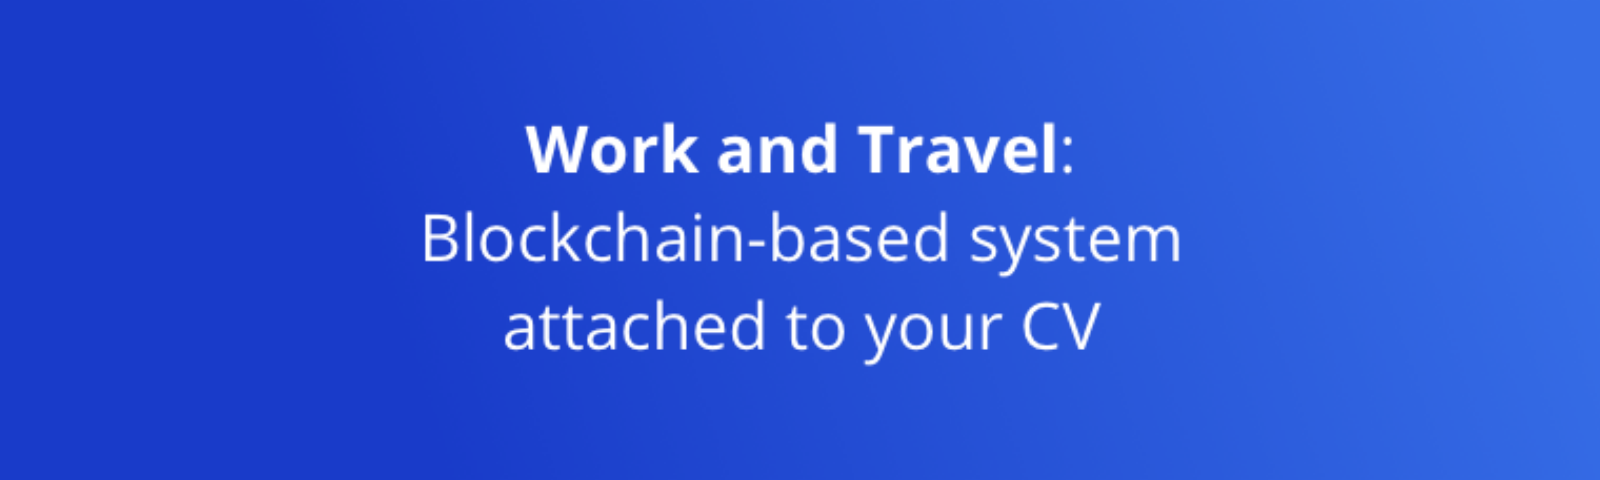 Work And Travel Blockchain Based System Attached To Your Cv